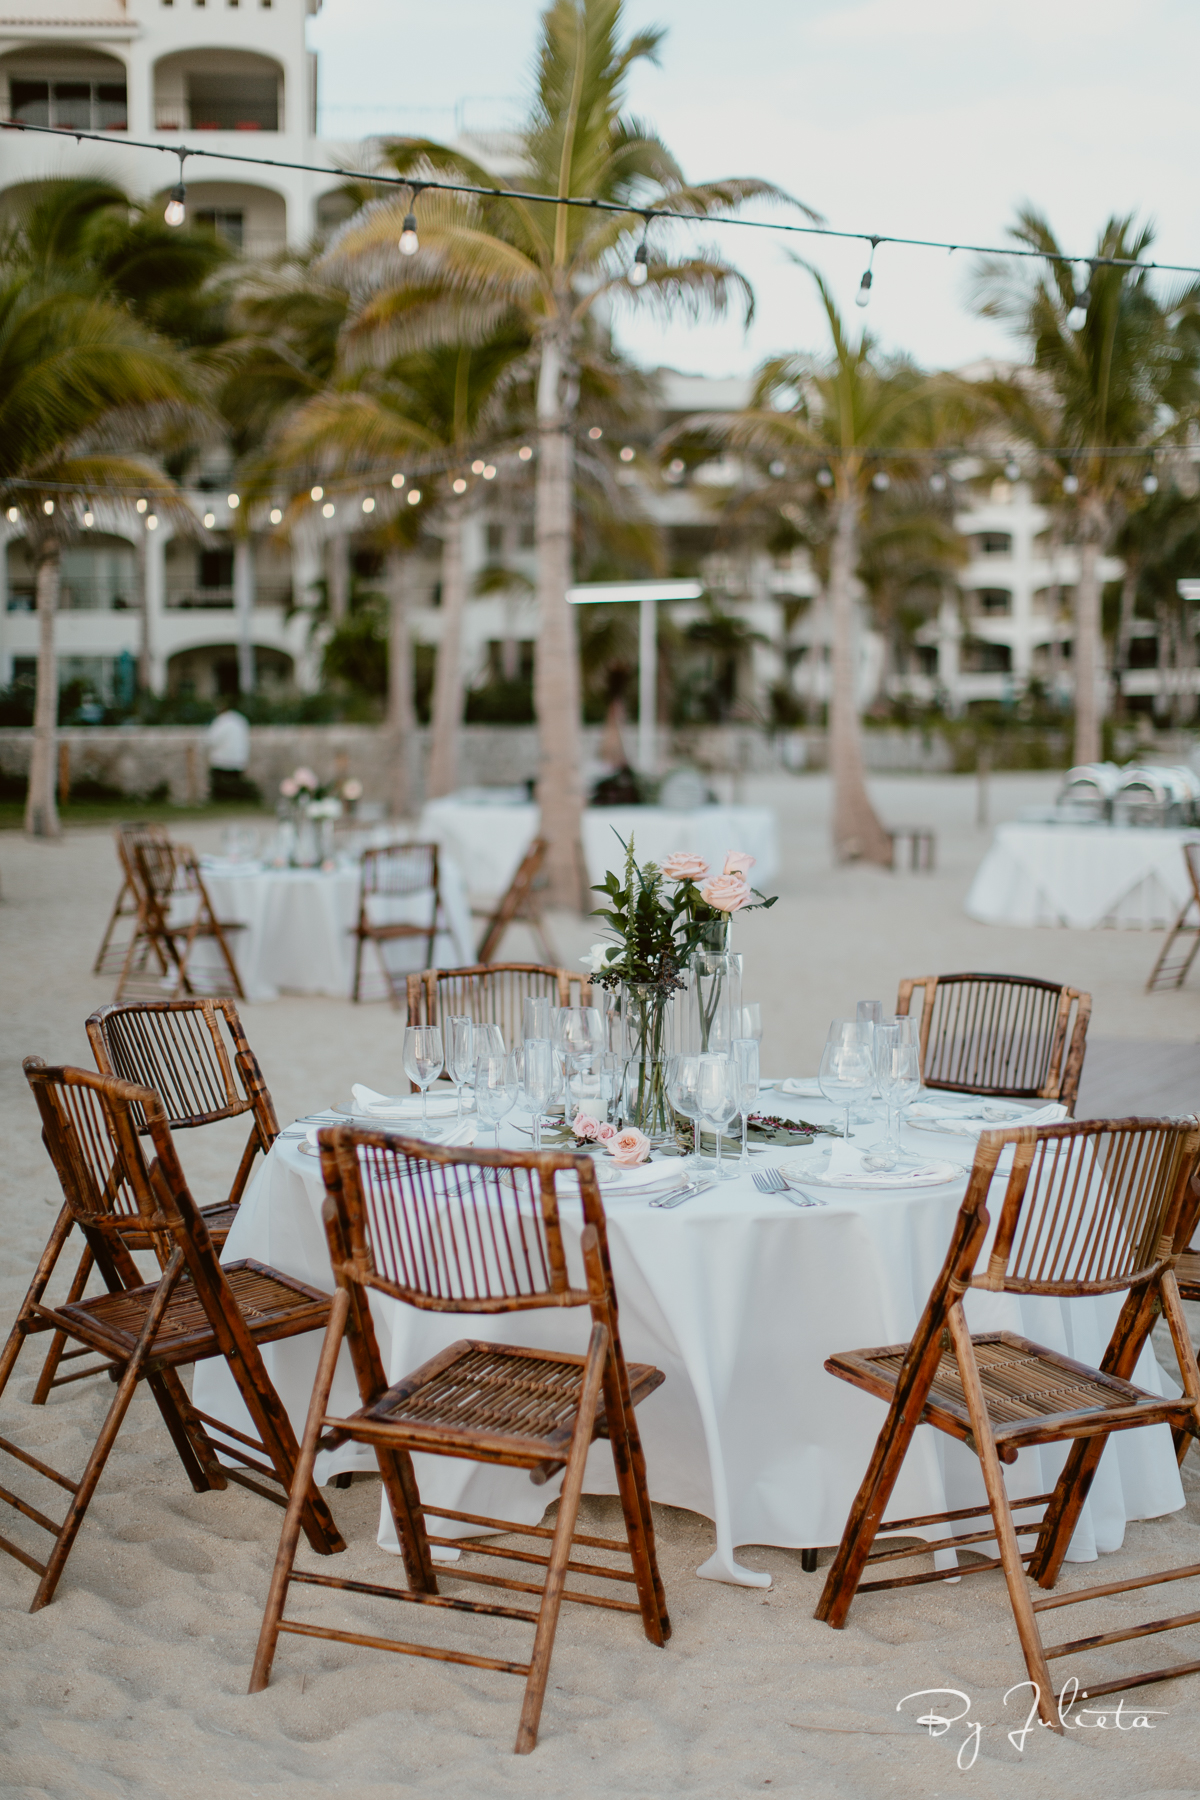 Los Cabos Beach Wedding Hyatt. K+G. Julieta Amezcua Photography. (454 of 525).jpg